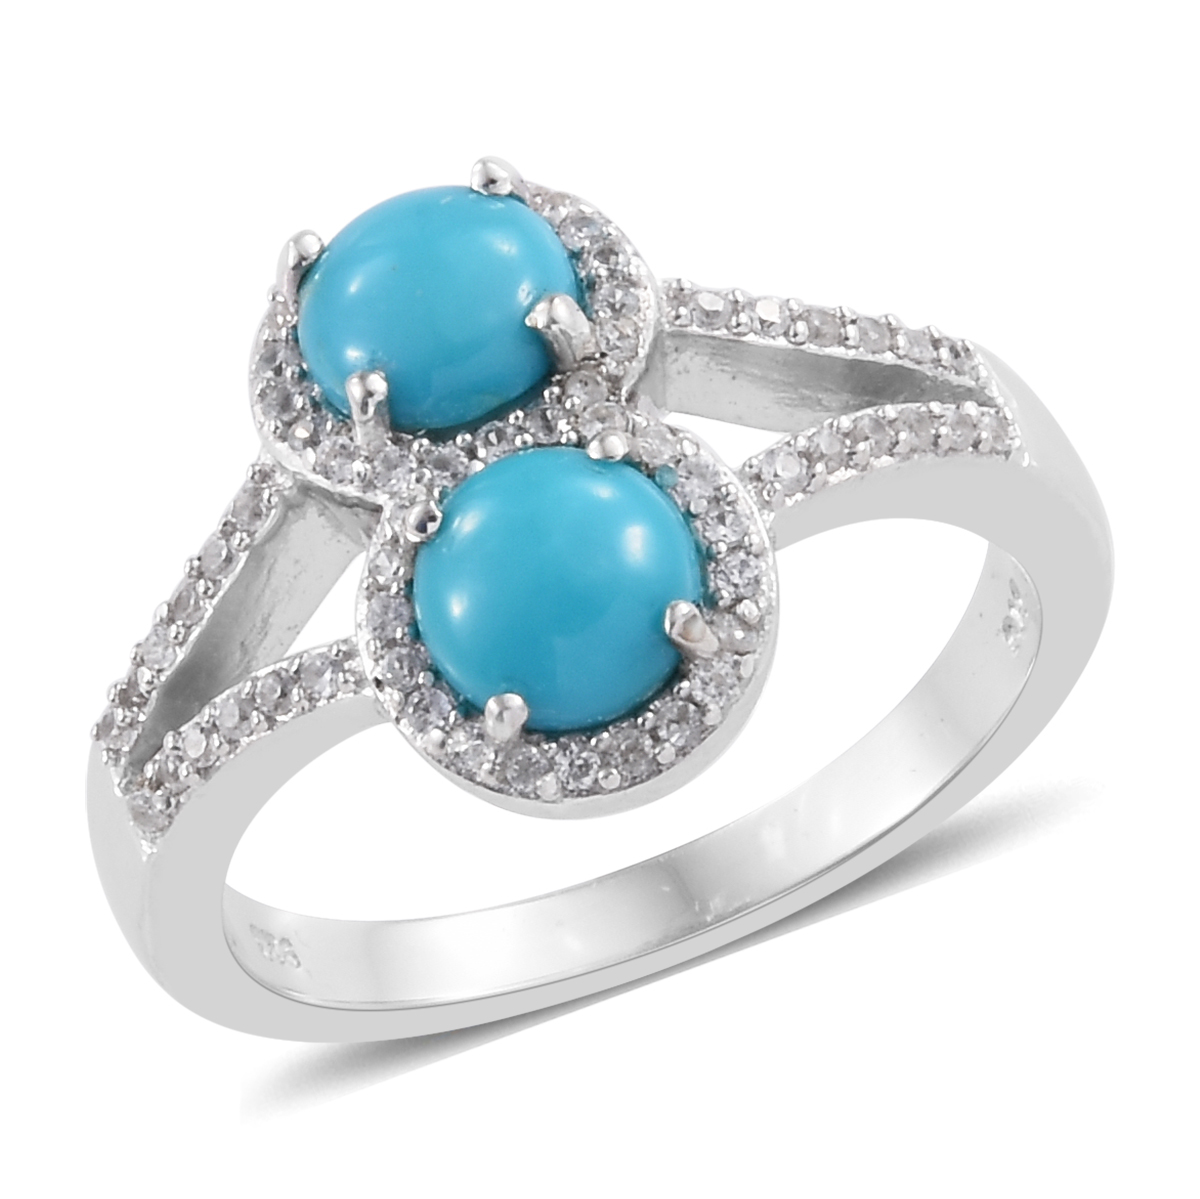 6c15e745fccd8b Arizona Sleeping Beauty Turquoise, Cambodian Zircon Platinum Over Sterling  Silver Split Ring (Size 7.0) 2.01 ctw | Shop LC